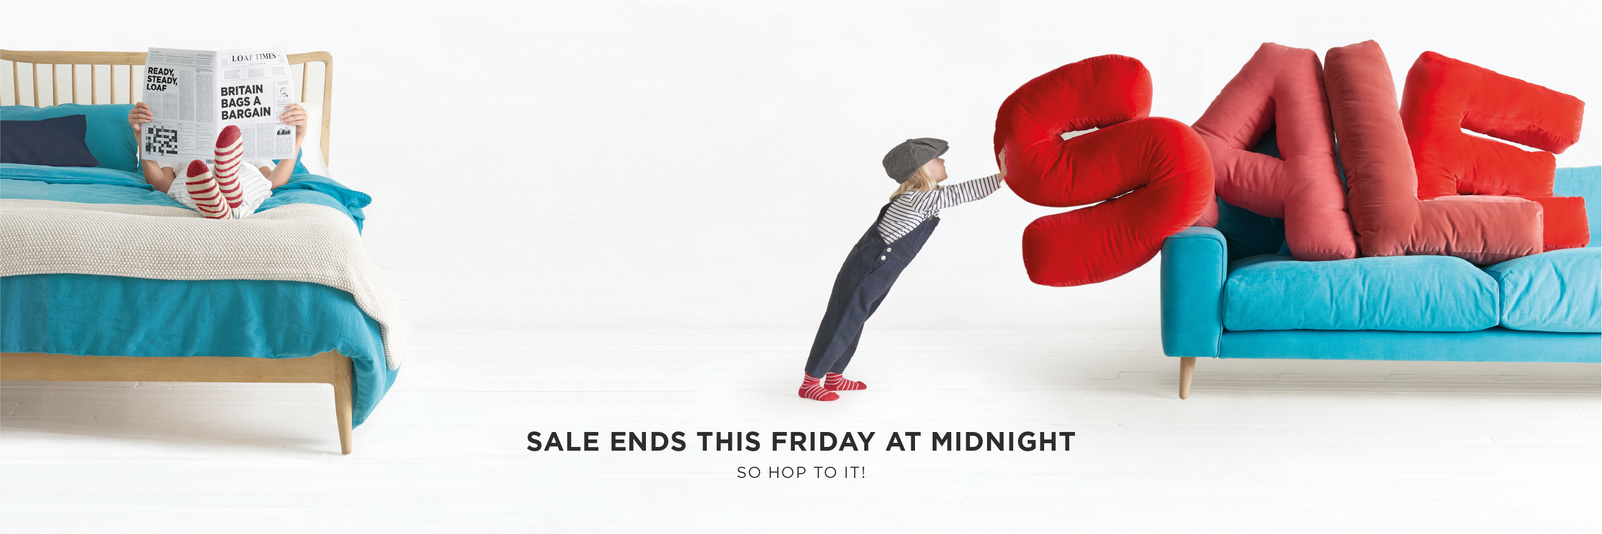 Sale ends this Friday at midnight!